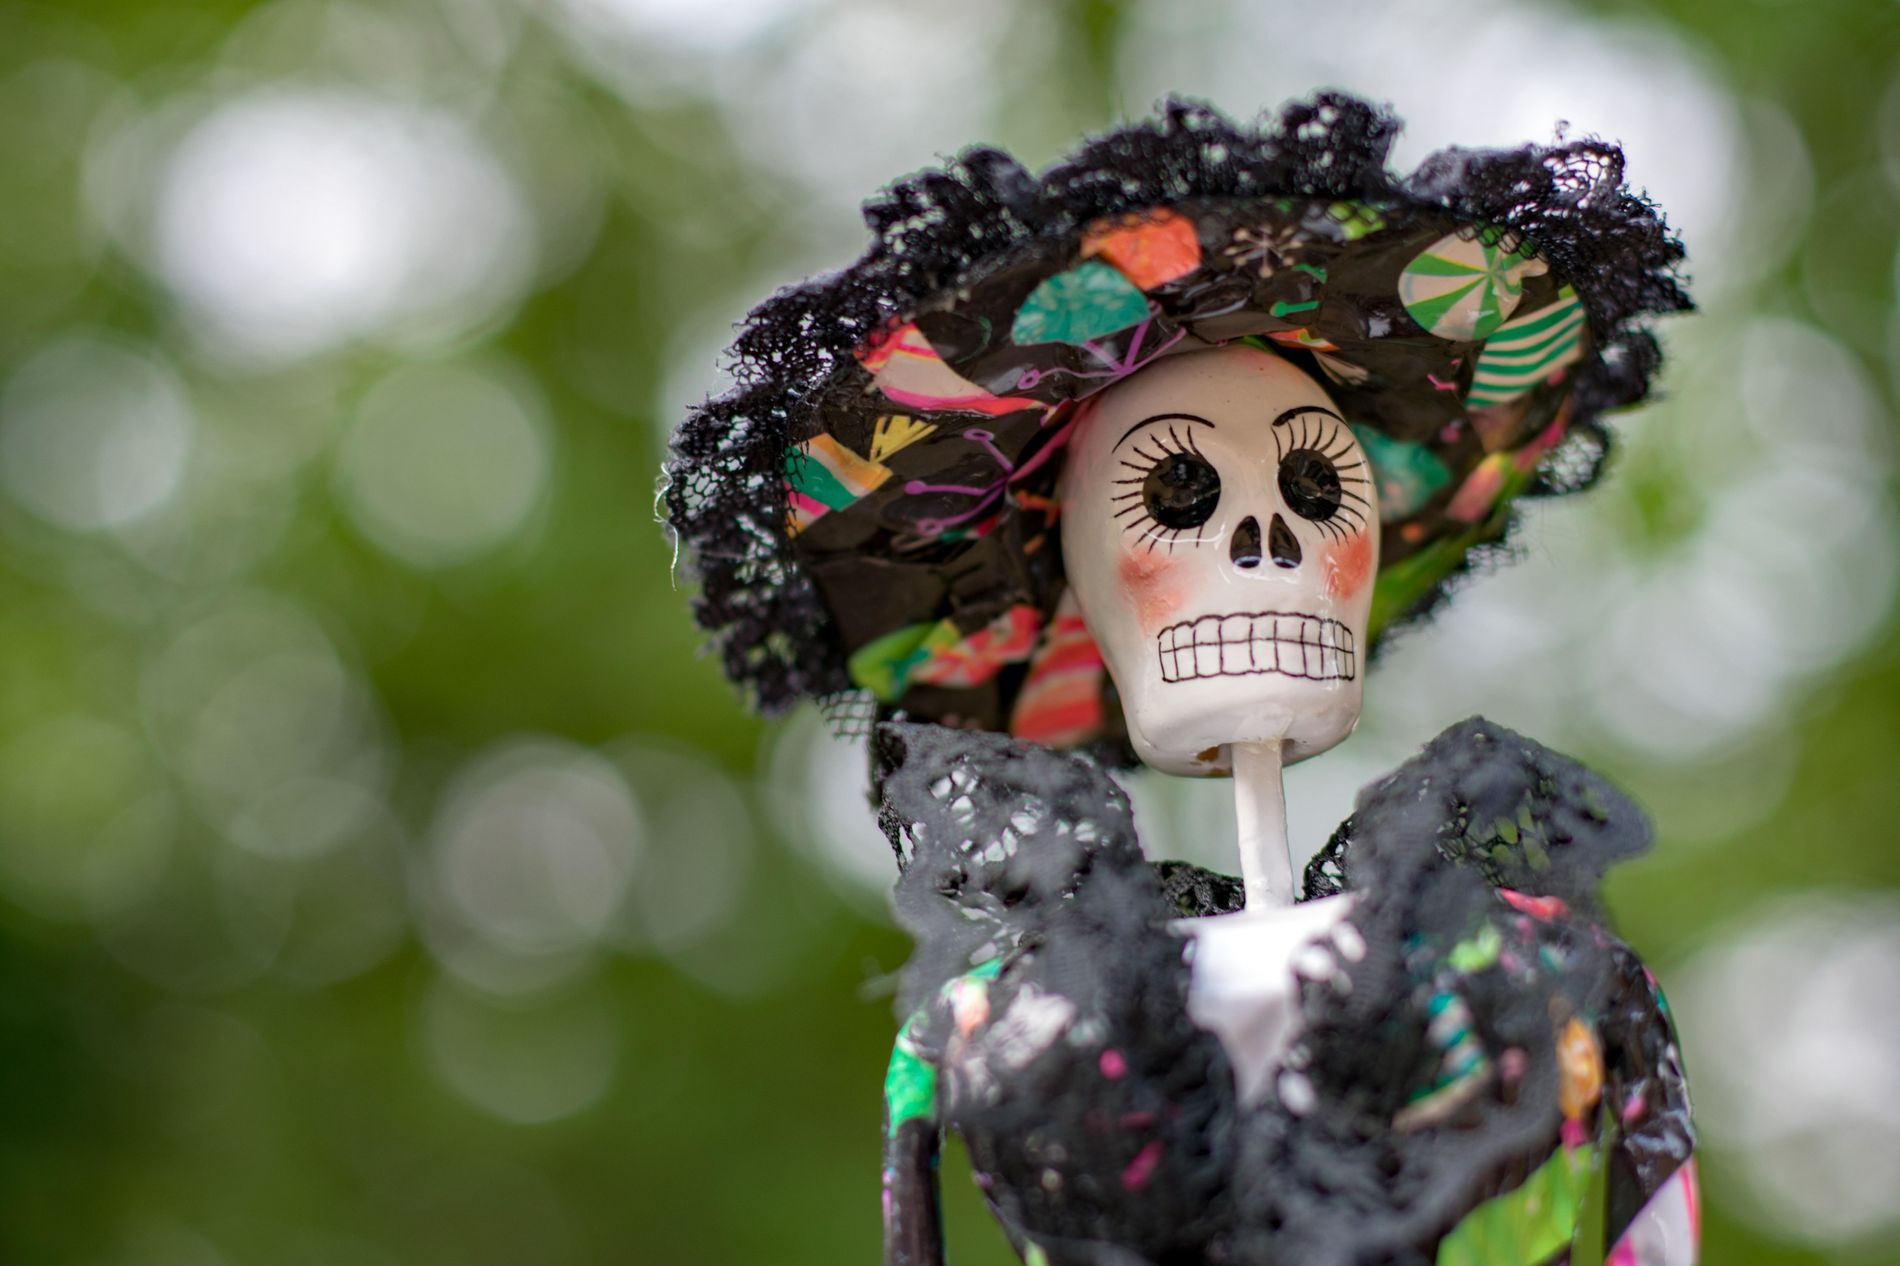 A La Catrina Calavera is a ubiquitous image during Day of the Dead – in costumes, ...